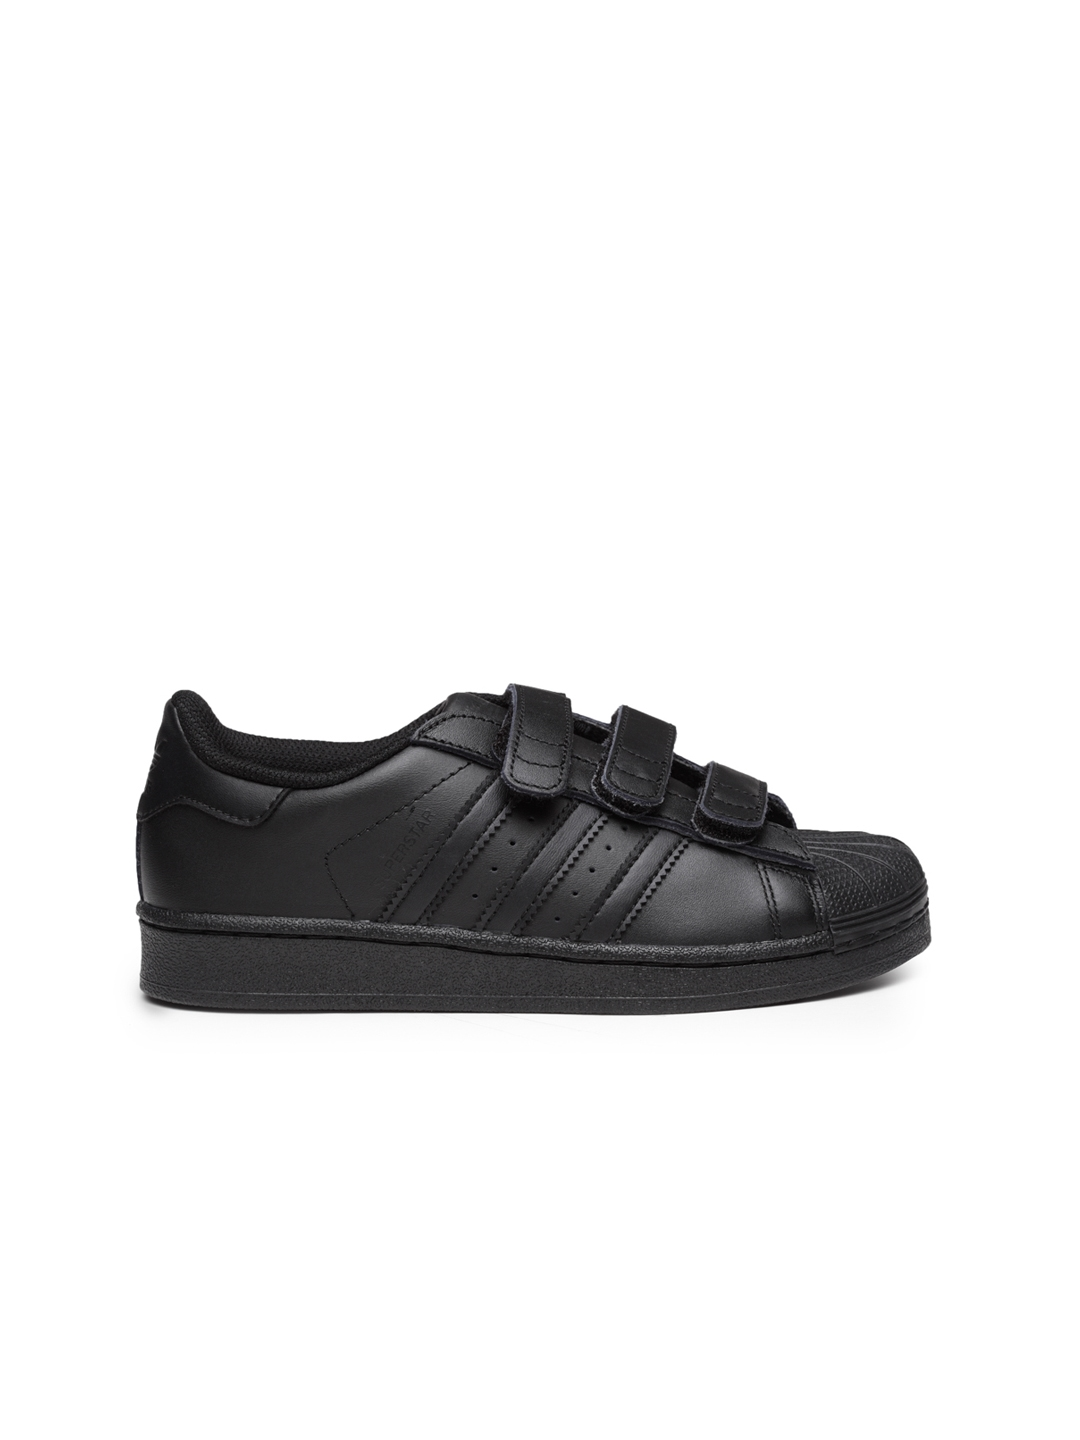 9a62ccb4991 Buy ADIDAS Originals Kids Black Superstar Foundation CF C Sneakers ...